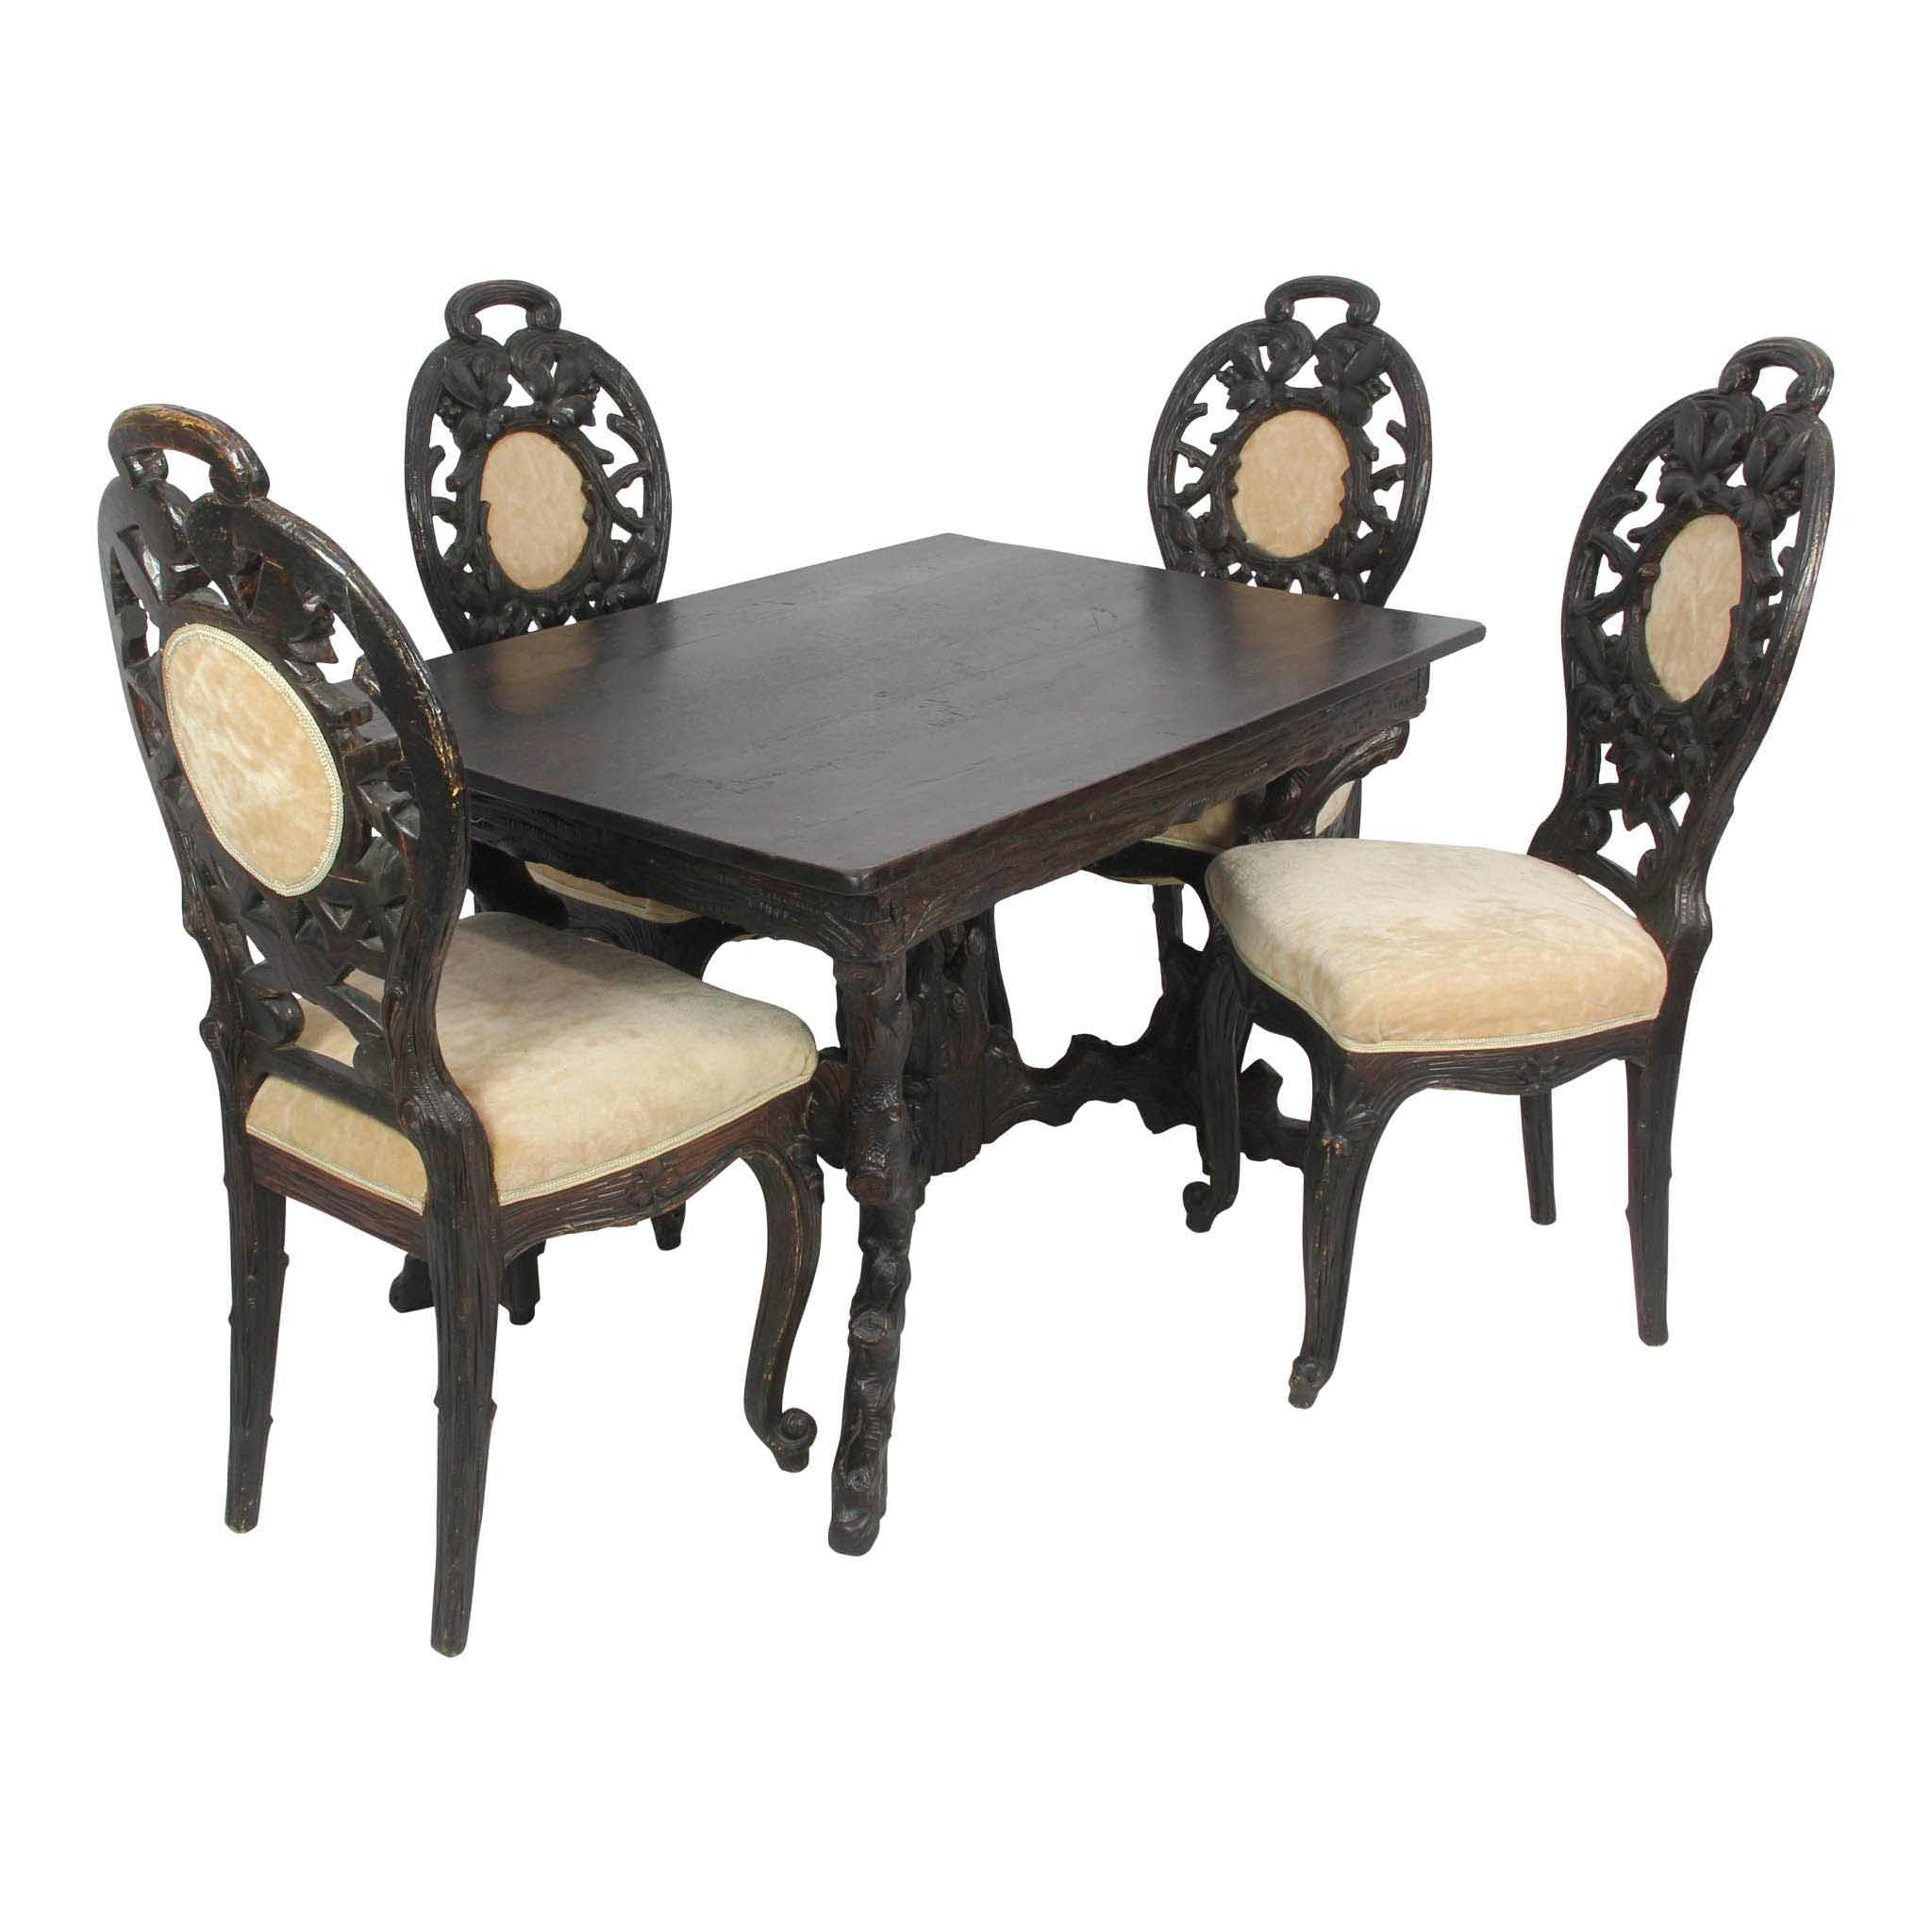 Black Forest Table and Chairs (1stdibs)